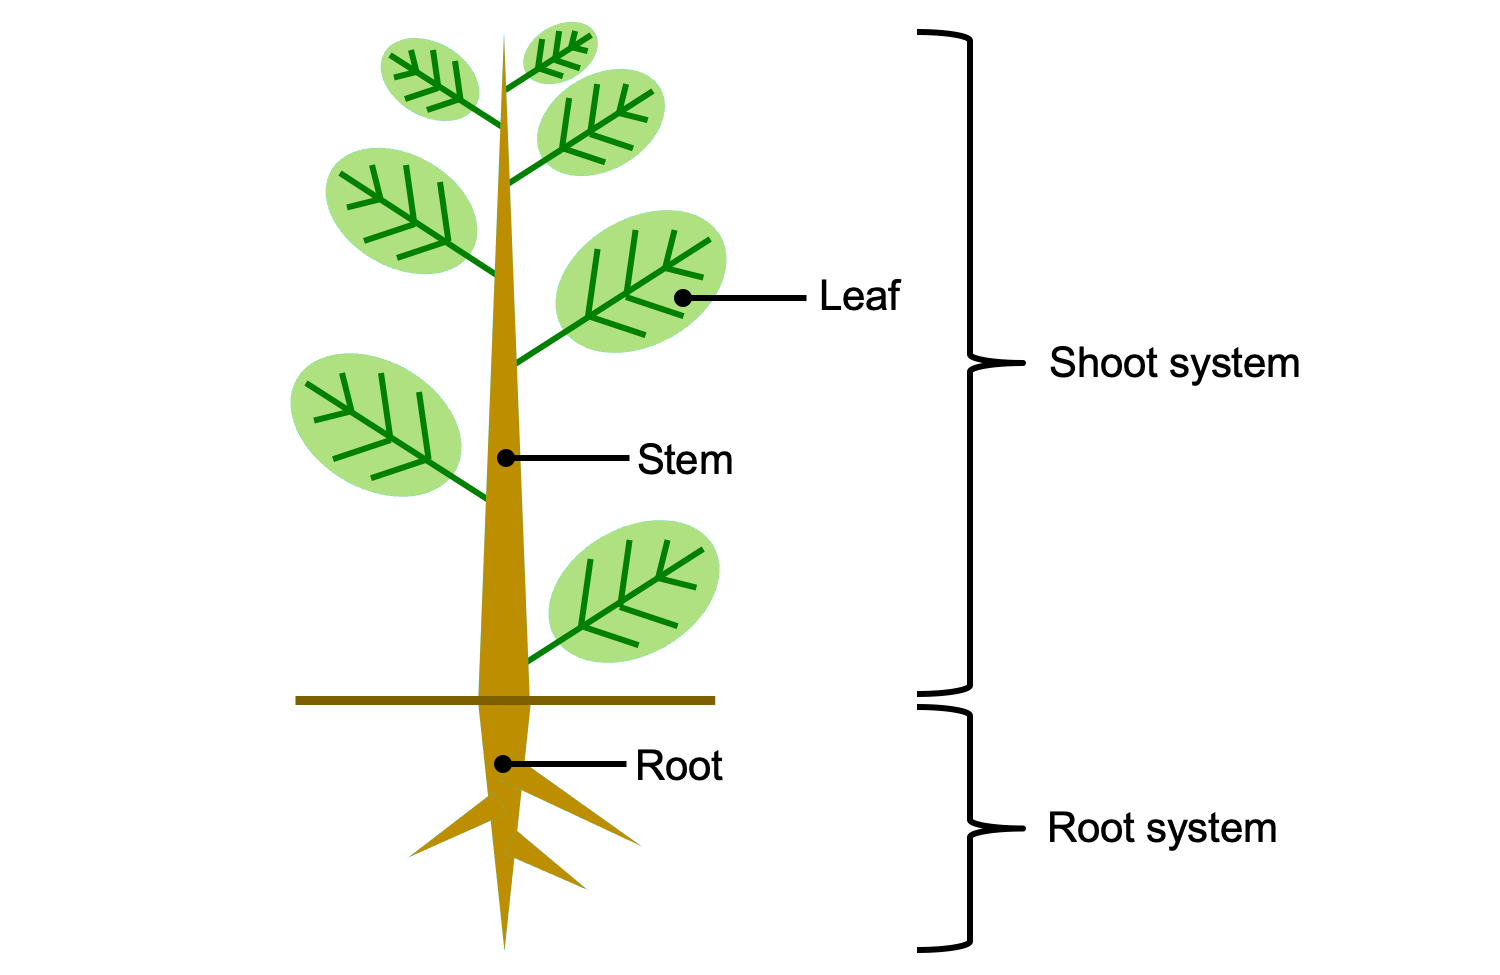 Simple illustration of a plant showing the organs (leaf, stem, and root) and systems (shoot system, root system)